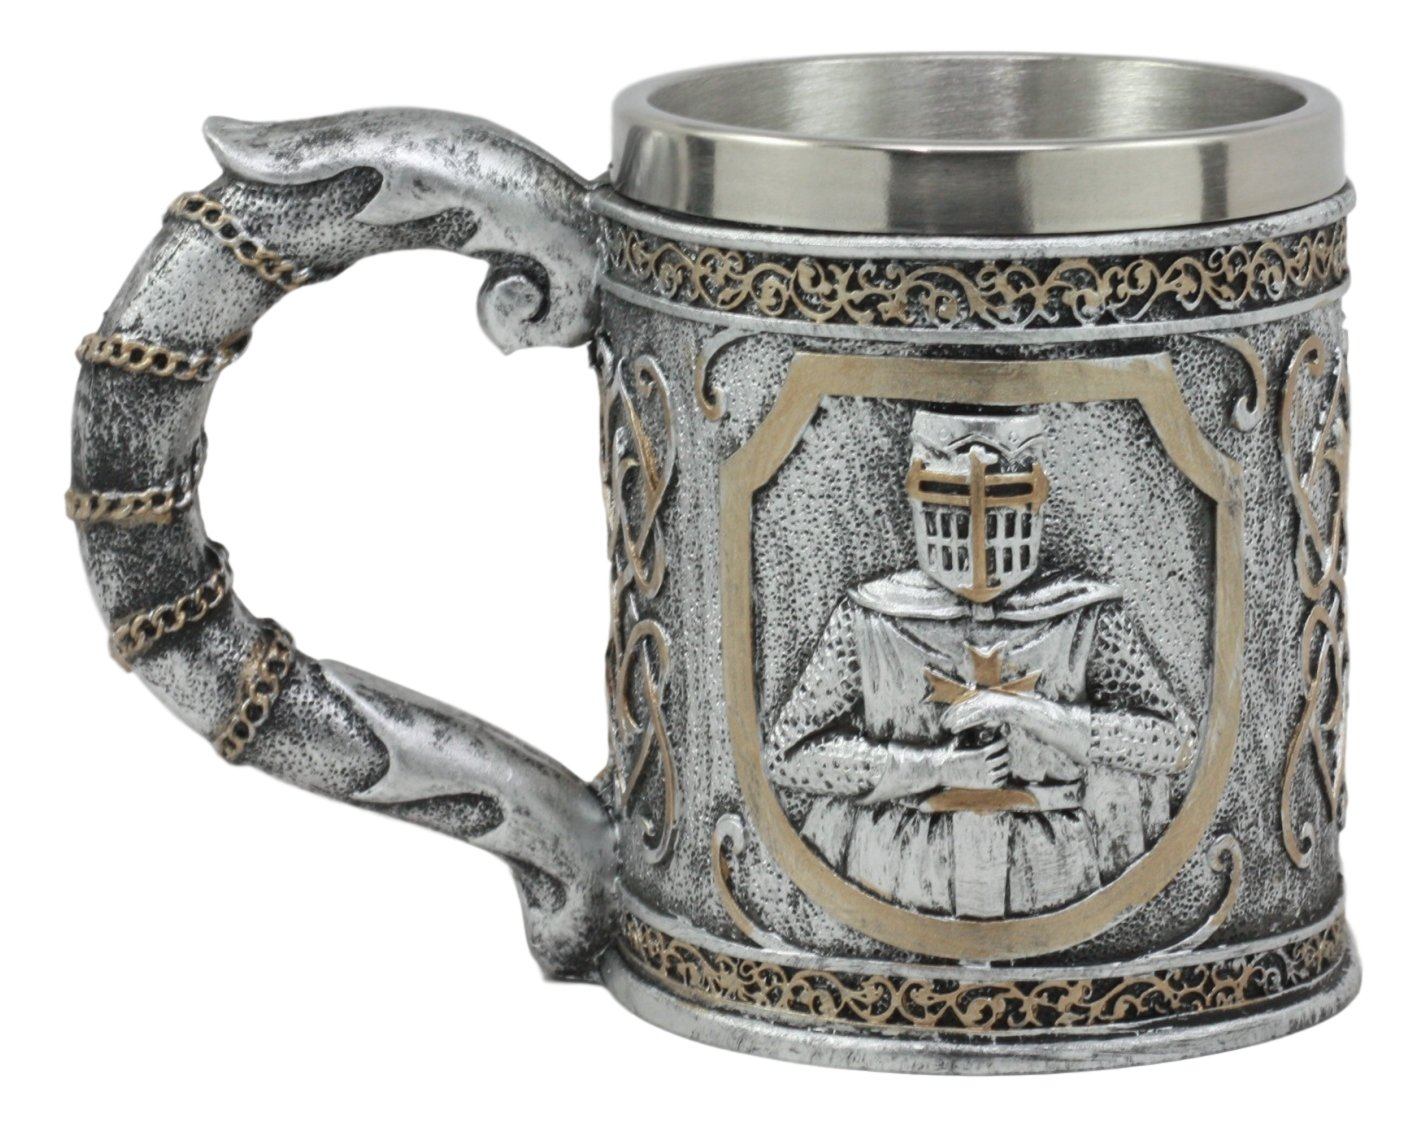 Ebros Medieval Templar Crusader Knight Mug 12oz Suit of Armor Knight Of The Cross Beer Stein Tankard Coffee Cup